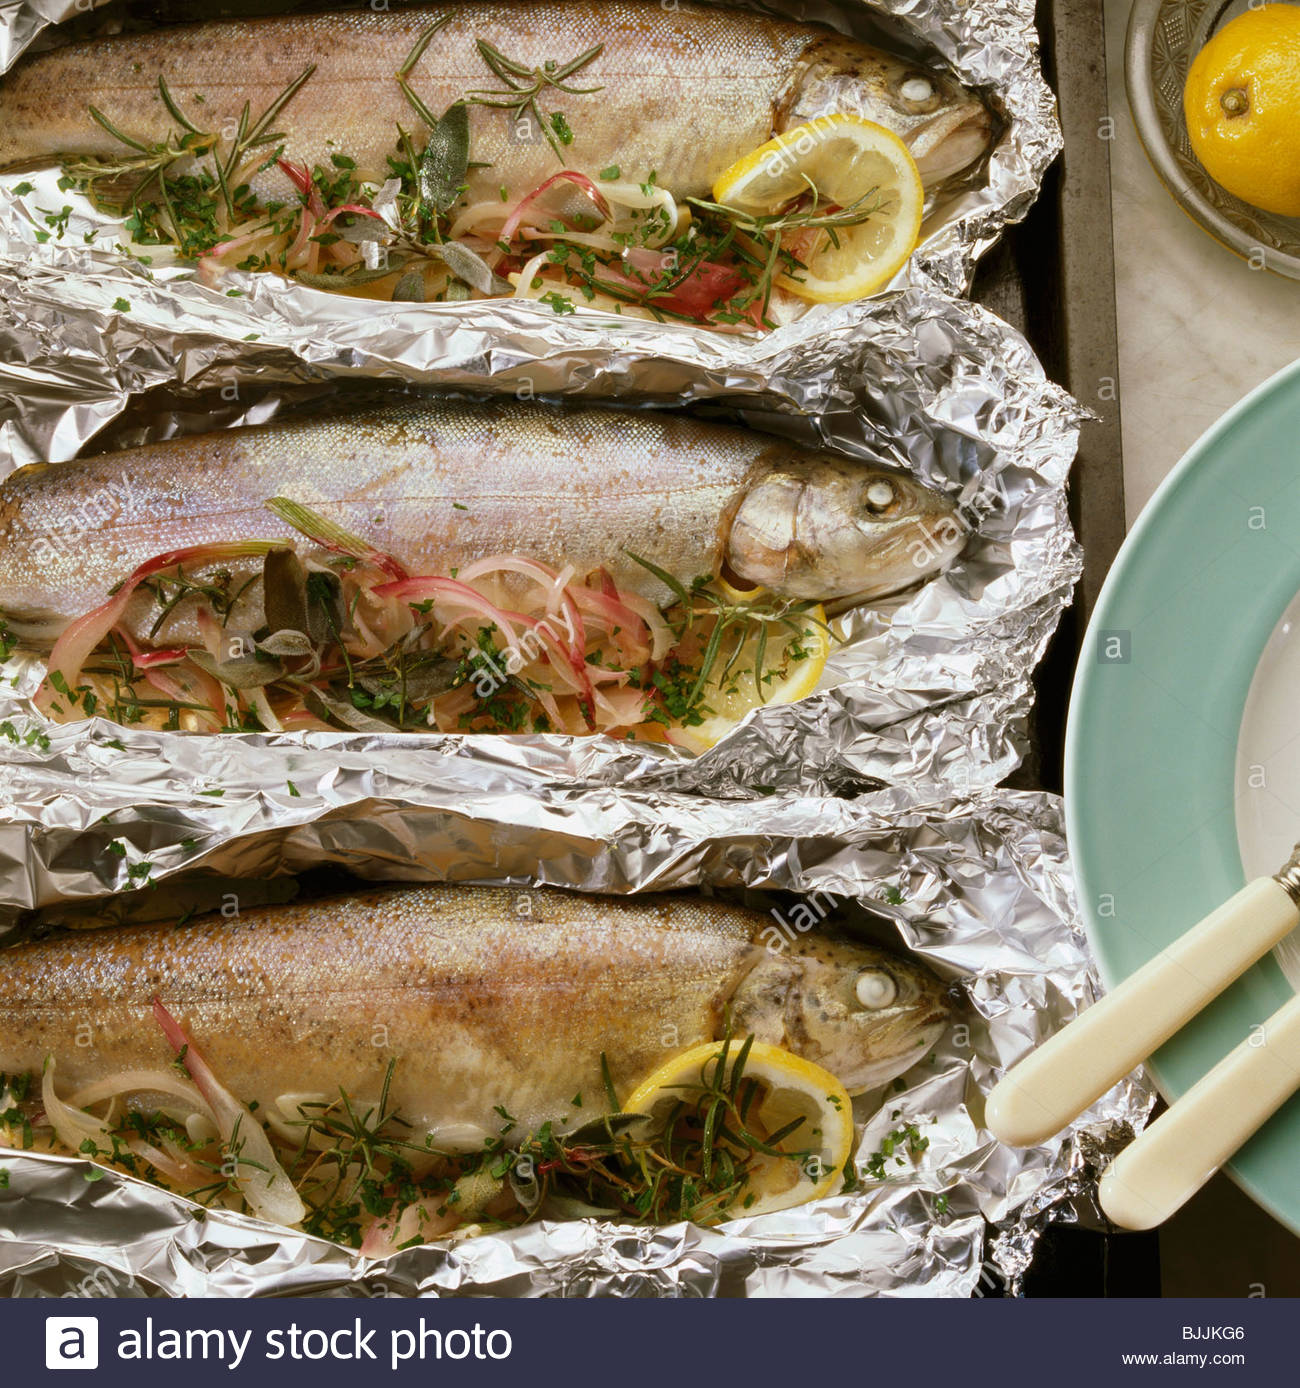 How to properly bake a mackerel in an oven in foil